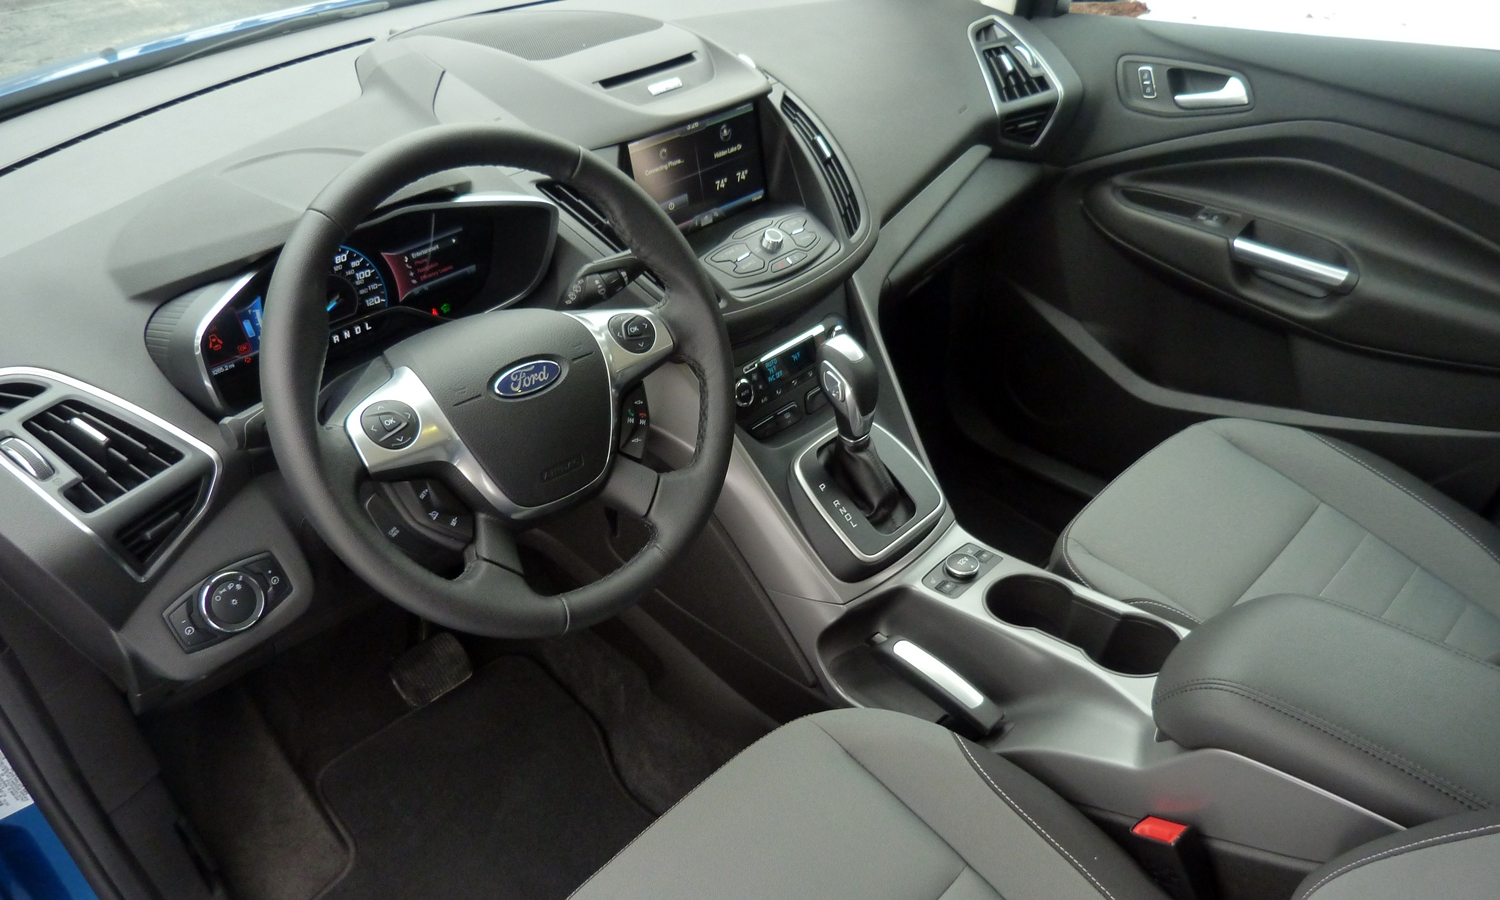 Kia Niro Photos: 2013 Ford C-MAX interior